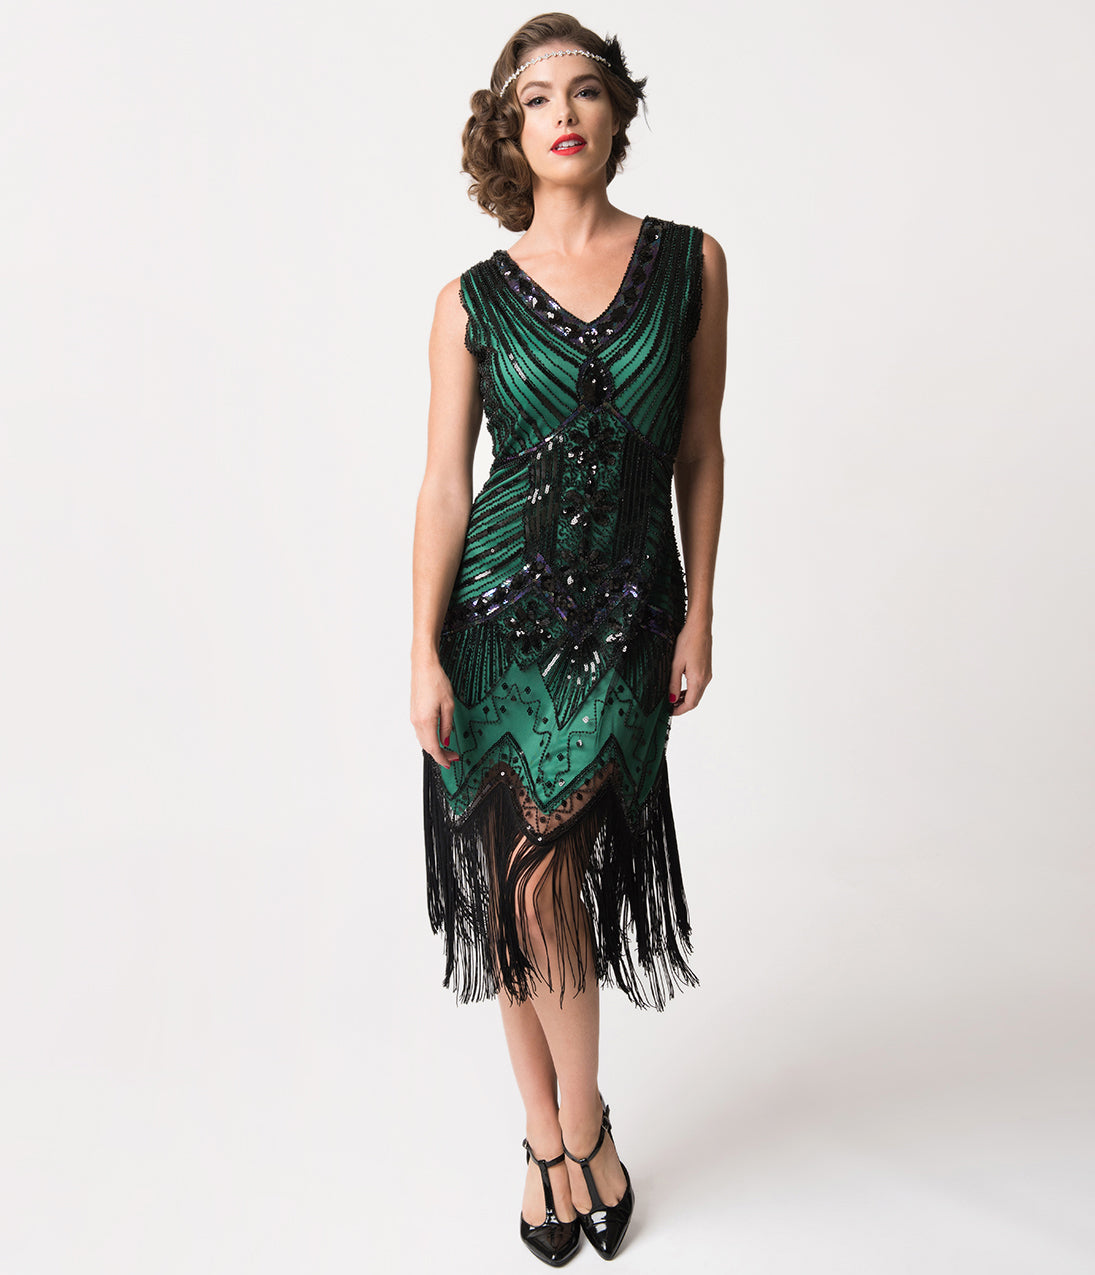 8c6e4b88e4864 Vintage Evening Dresses and Formal Evening Gowns Unique Vintage 1920S Deco  Green Black Sequin Veronique Fringe